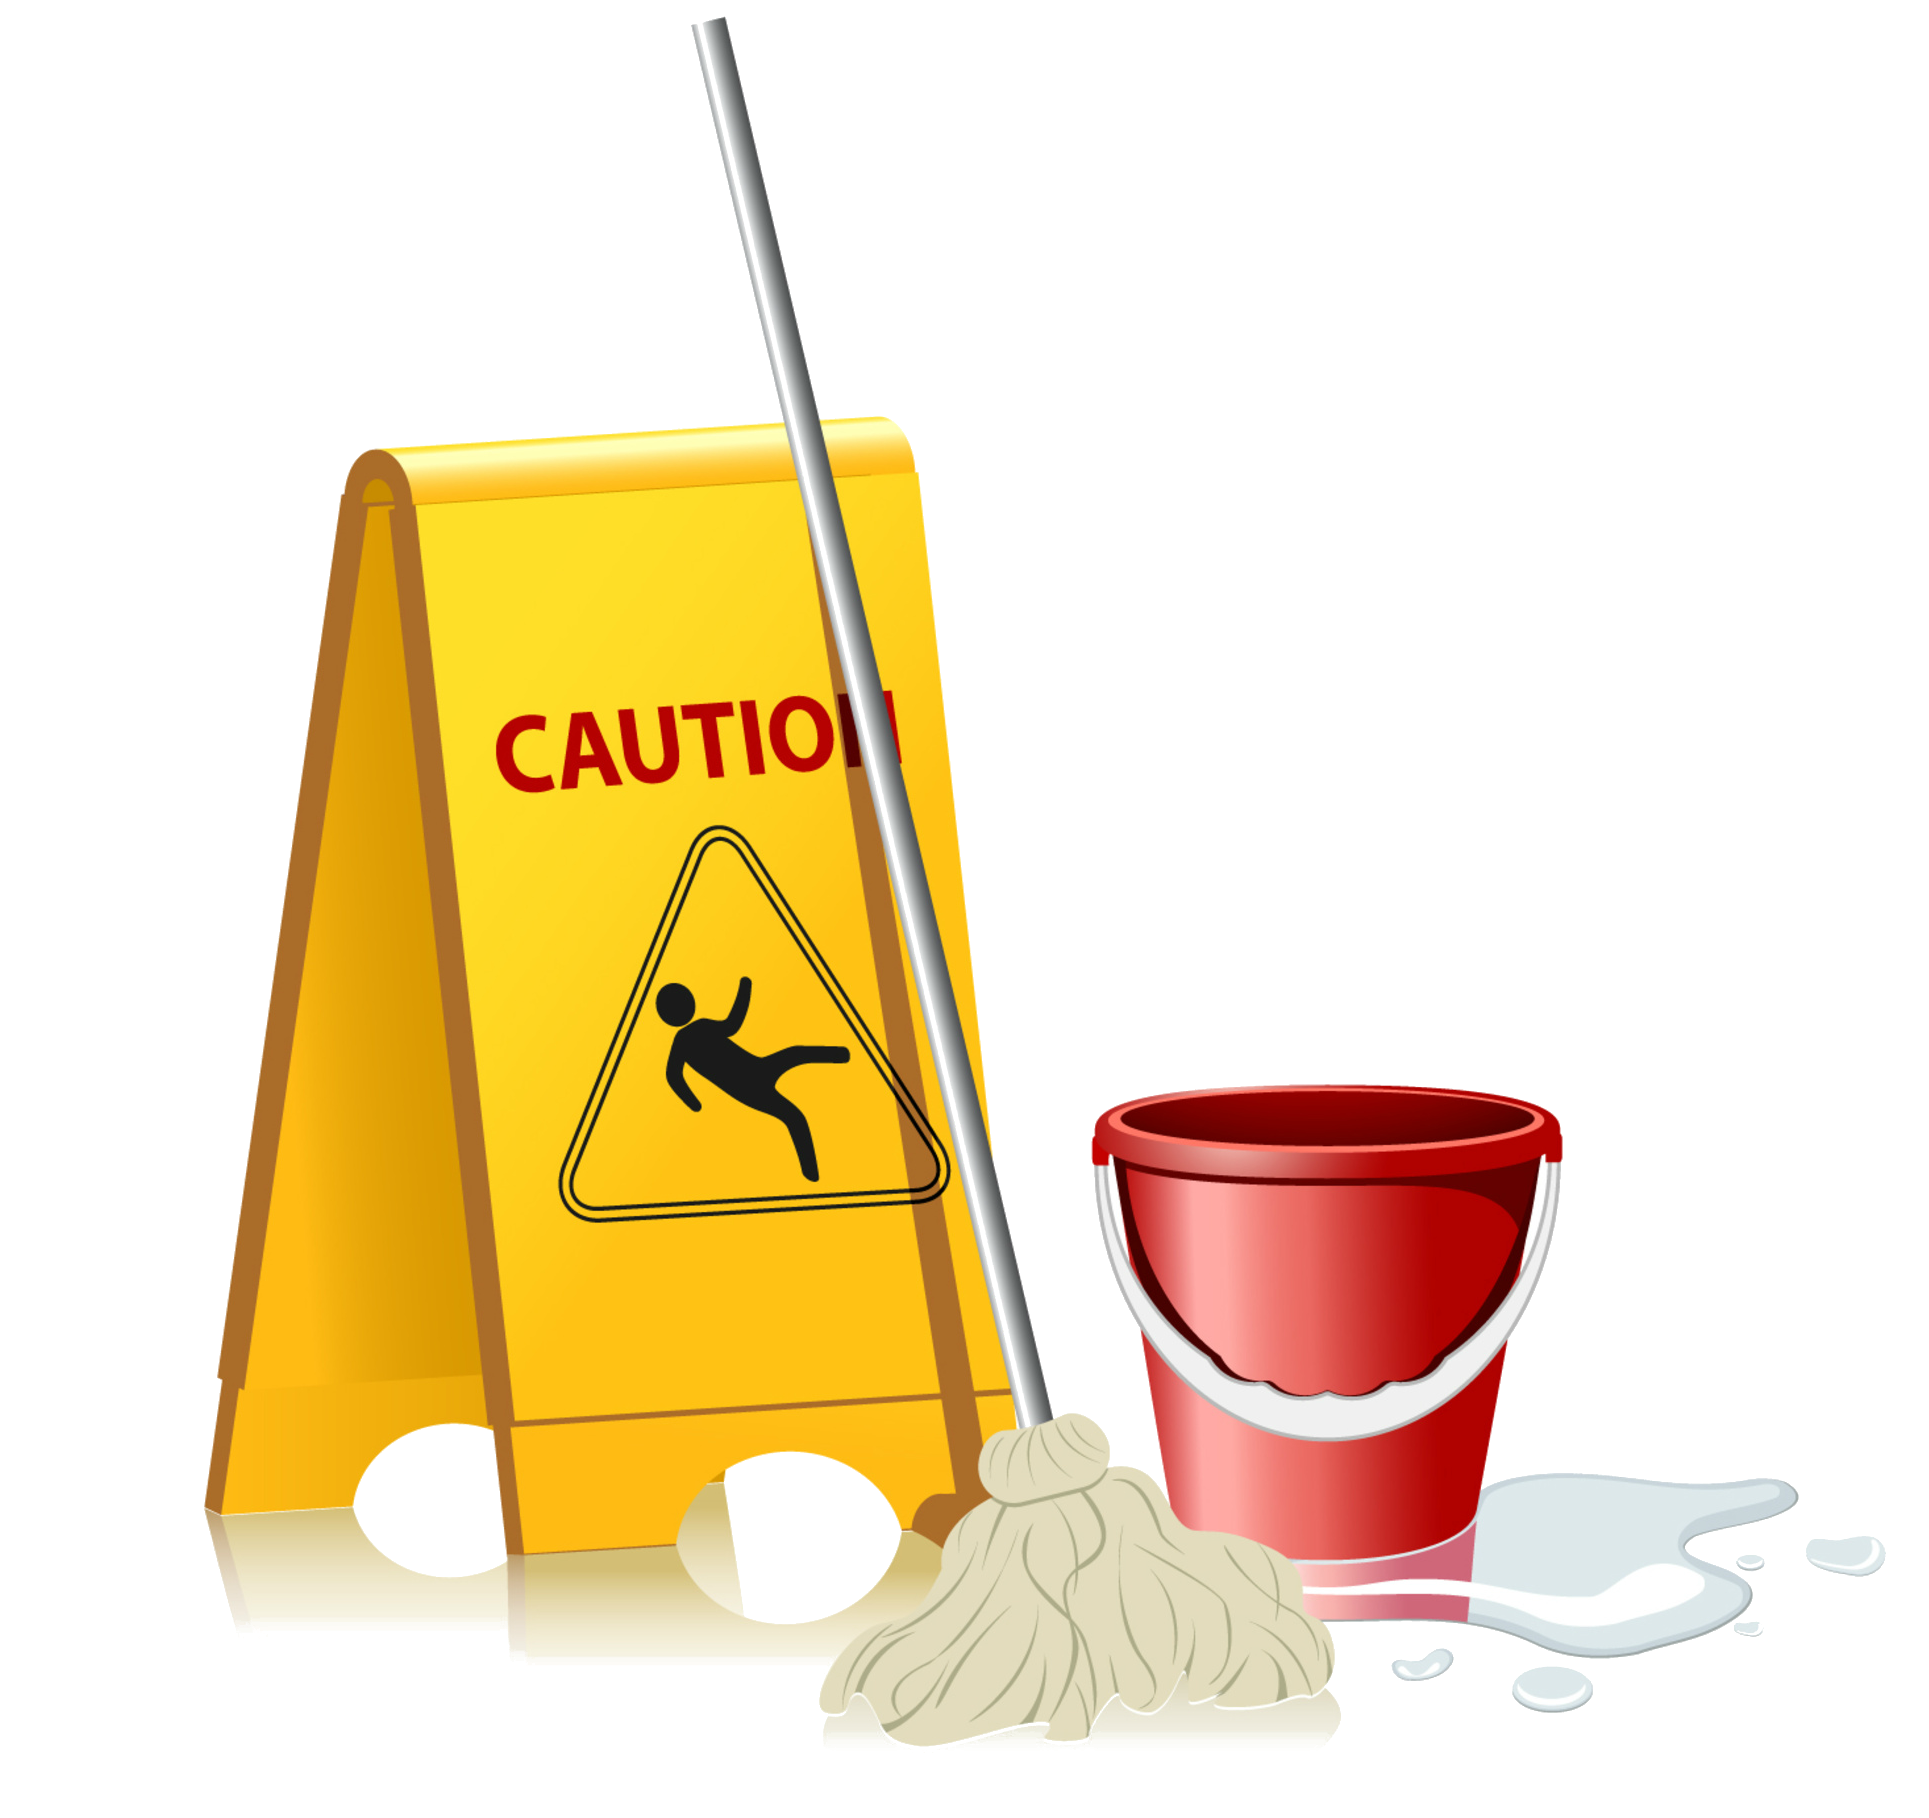 Maid clipart broom. Cleaning service f budgets